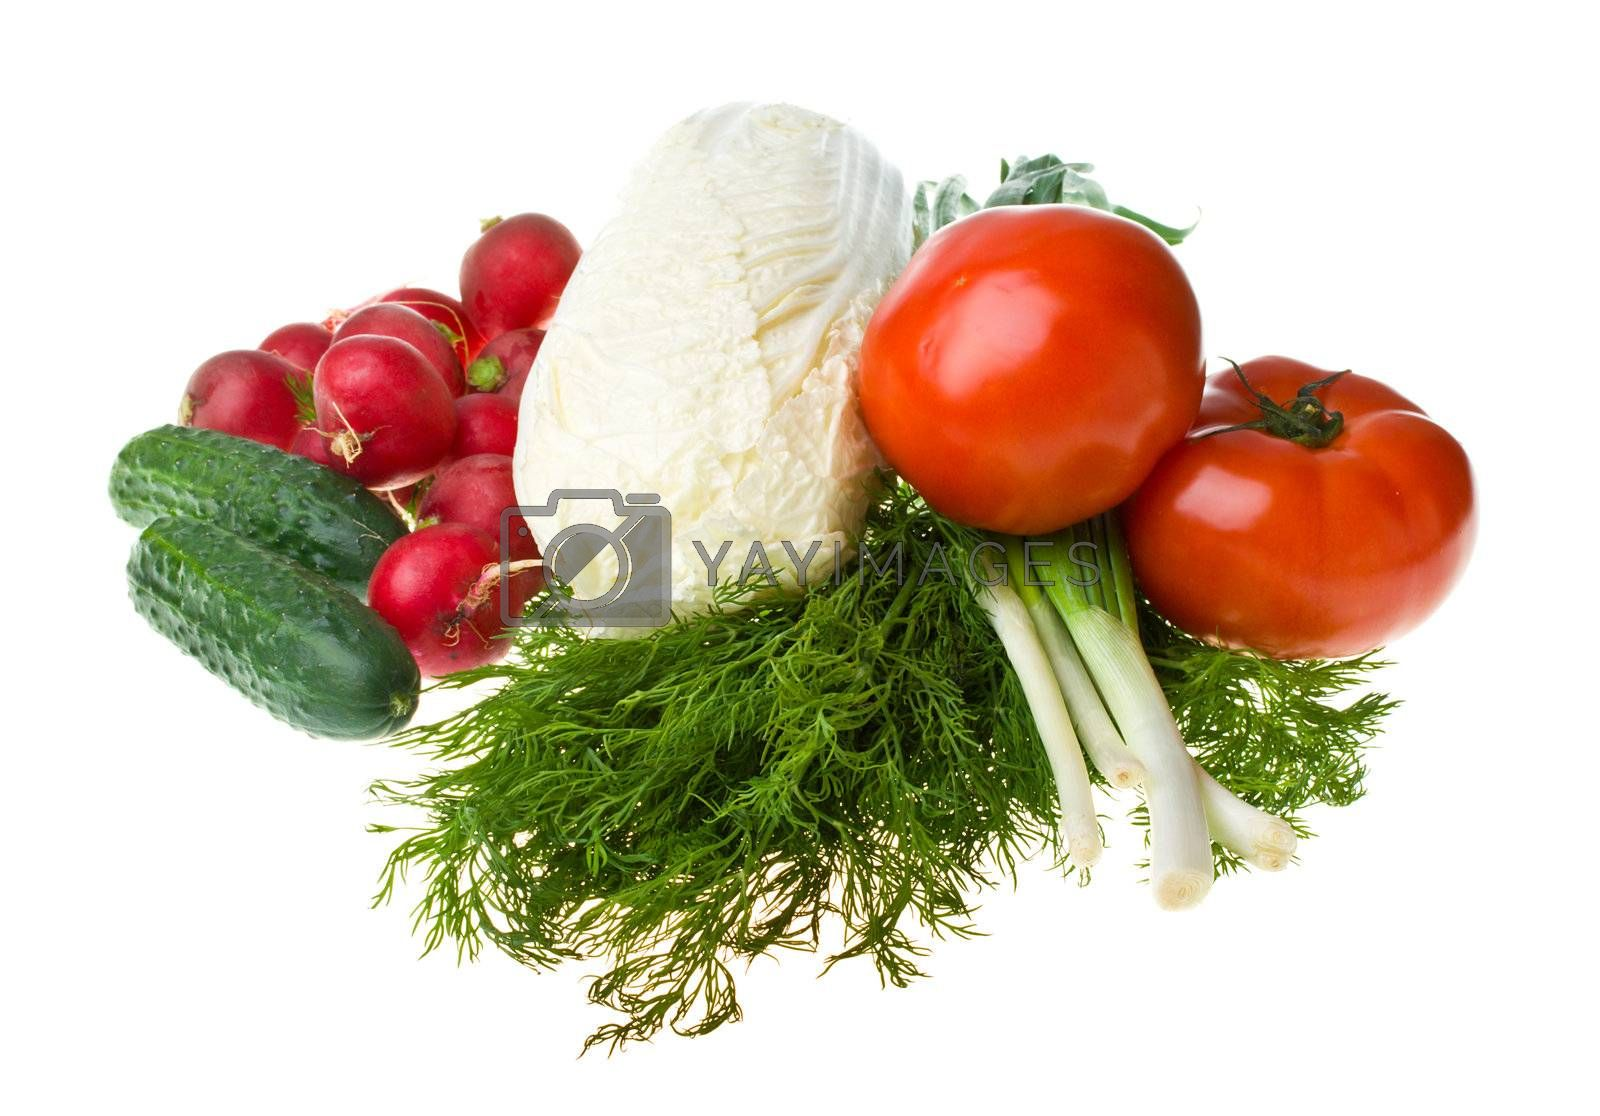 Royalty free image of heap of various vegetables by Alekcey